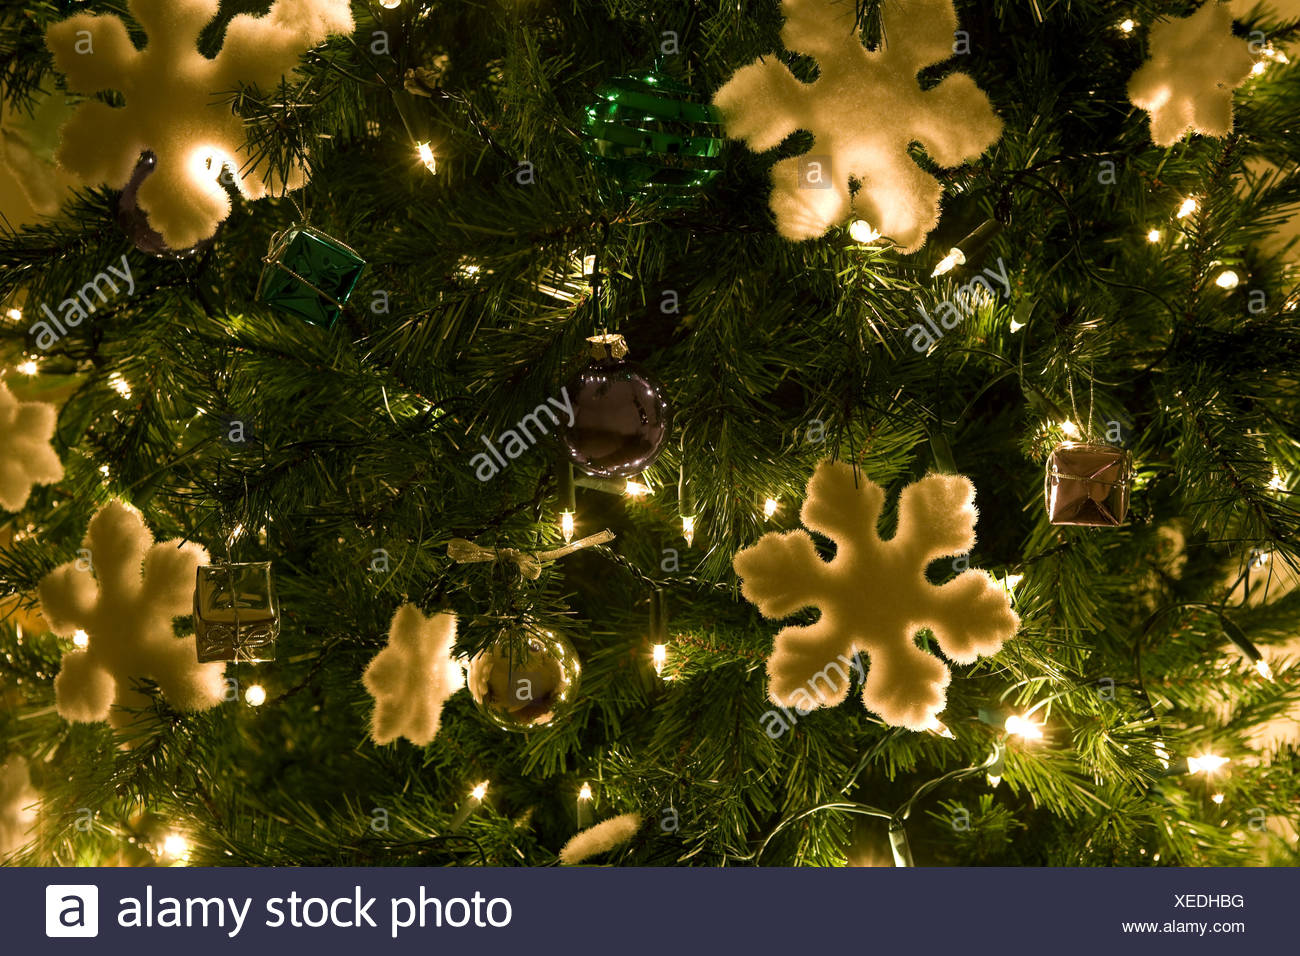 Christmas decorations on a tree - Stock Image